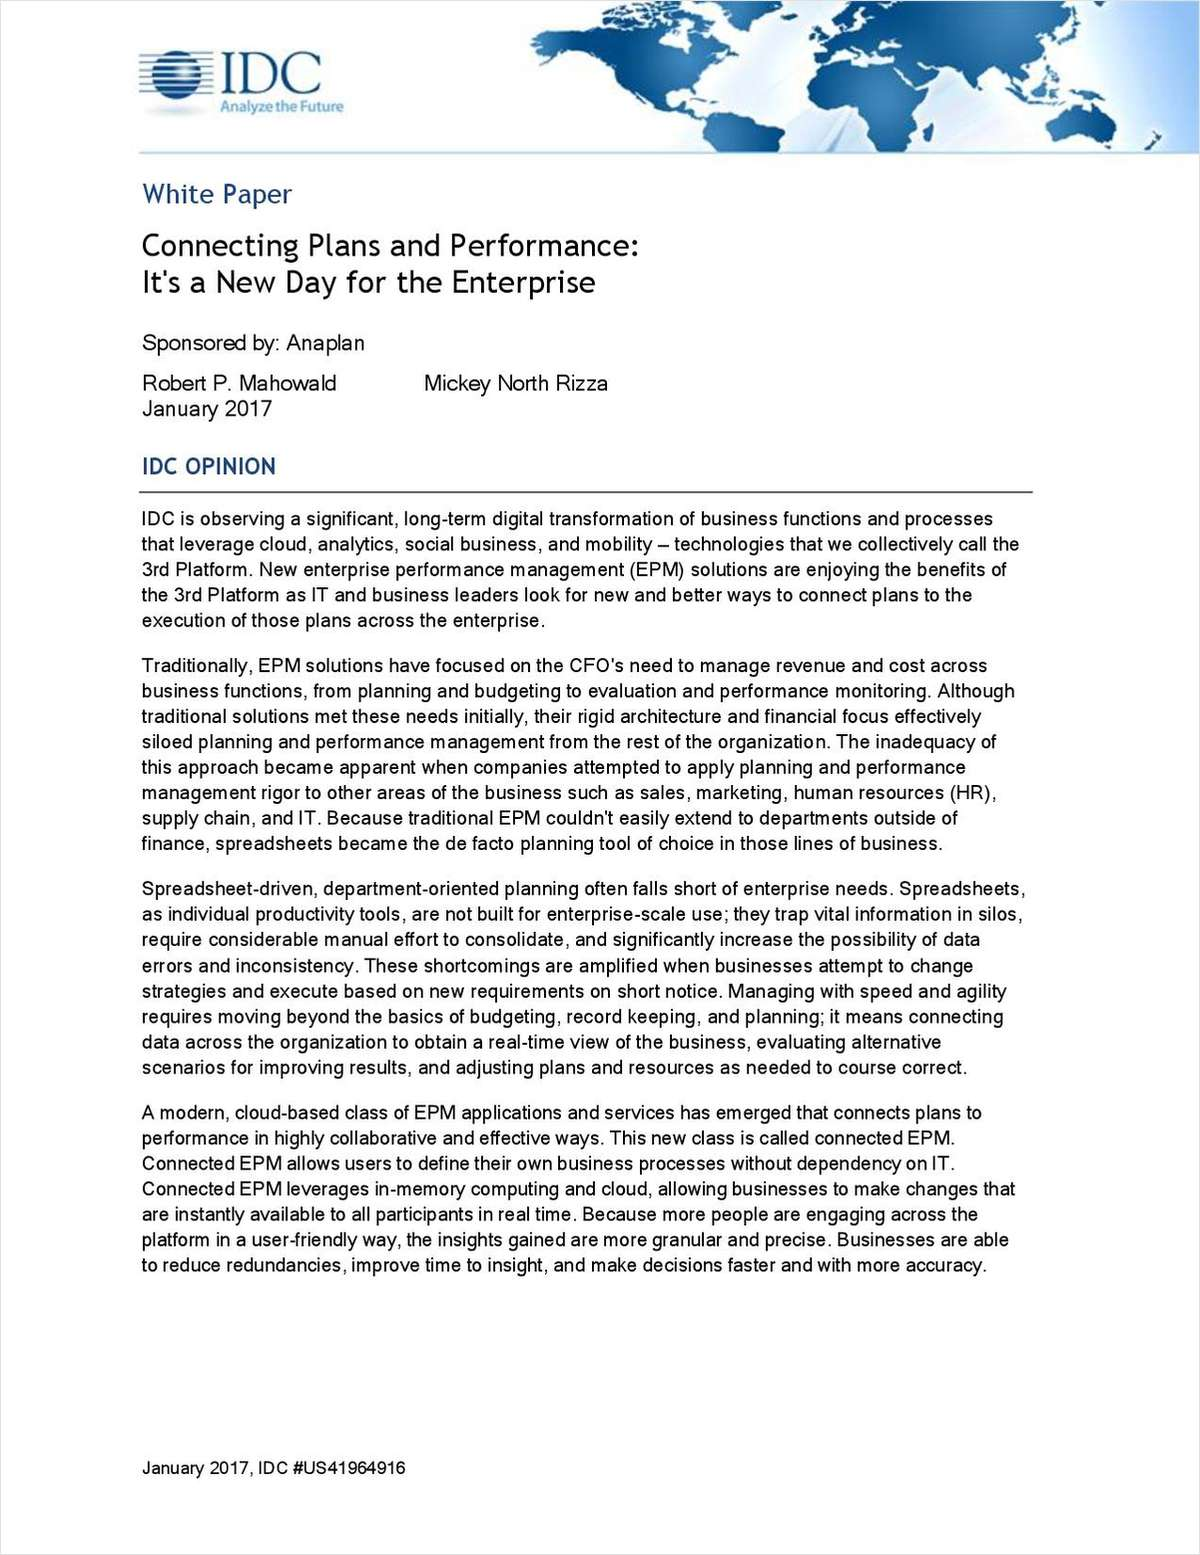 Connecting Plans and Performance:  It's a New Day for the Enterprise